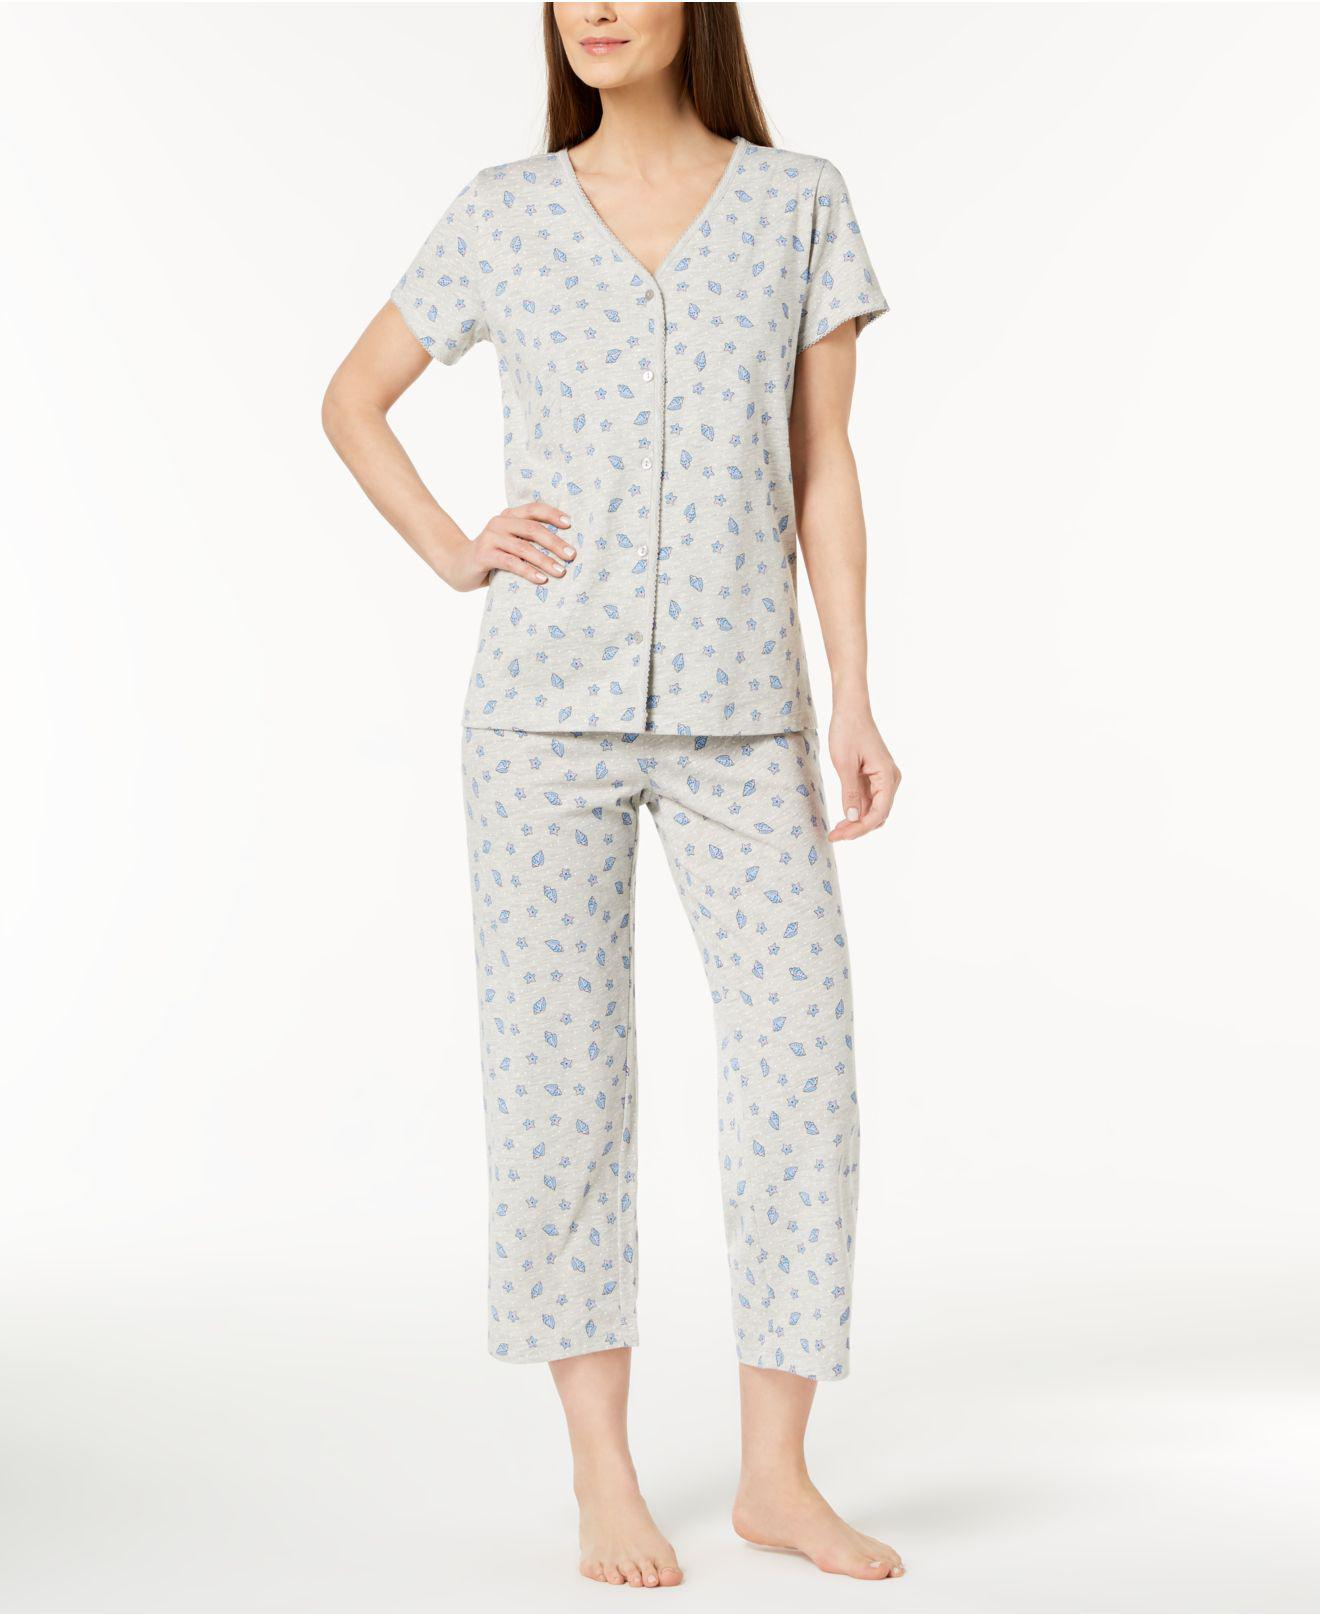 02bfd3d42e Lyst - Charter Club Printed Cotton Pajama Set